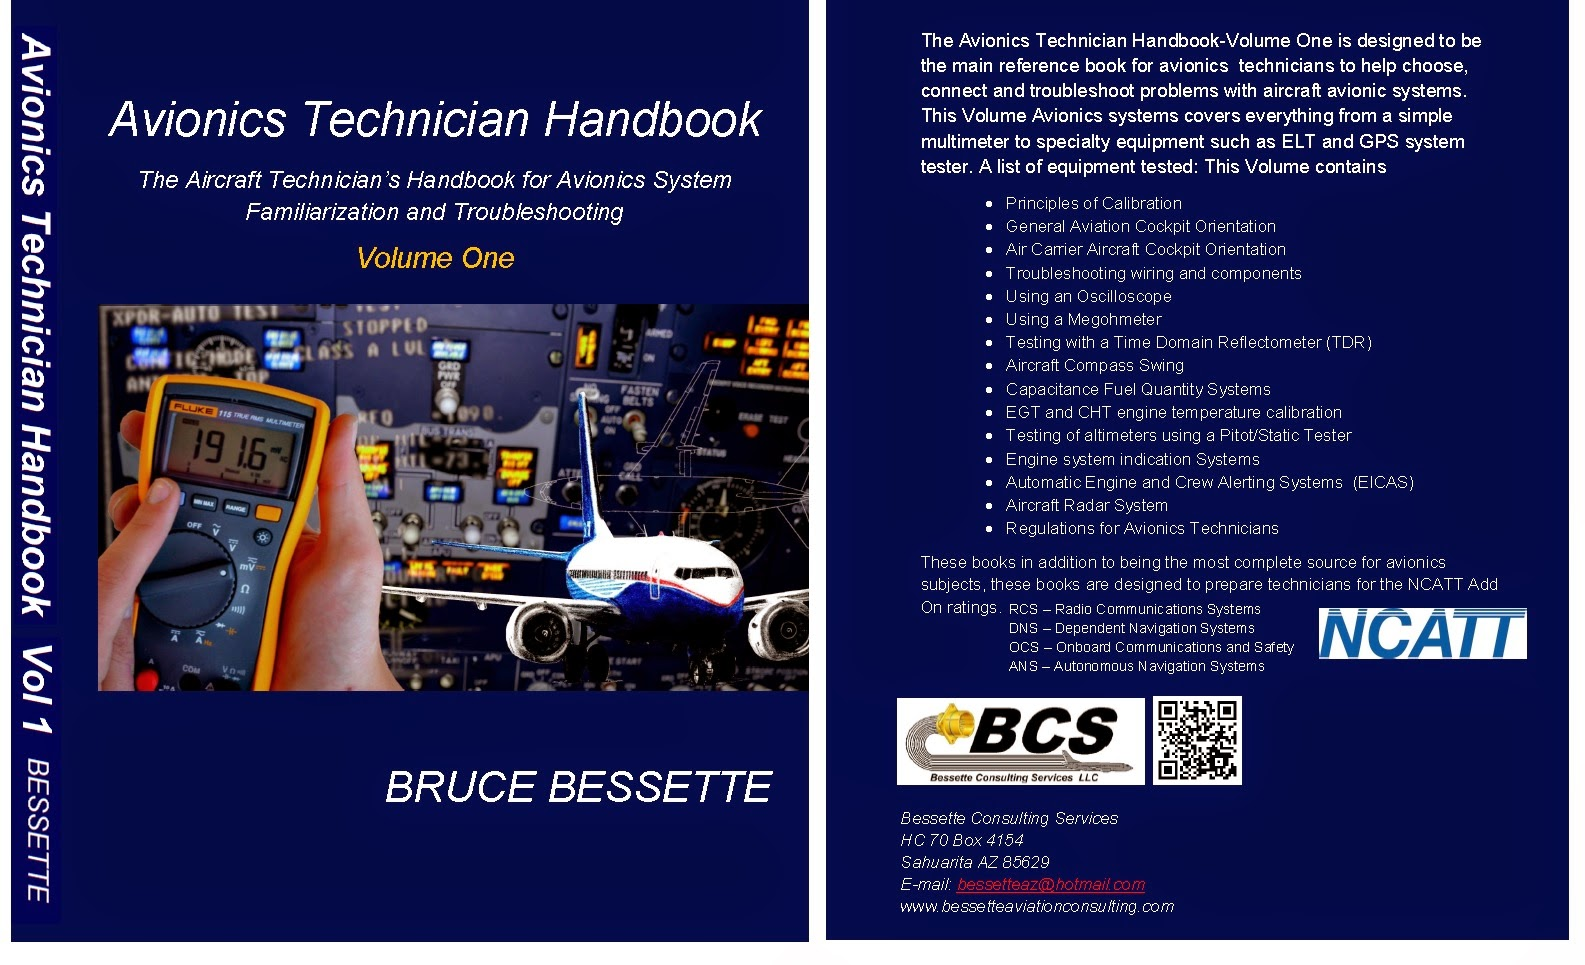 Bessette Consulting Services Aircraft Wiring Books After 3 Years And Hundreds Of Edits Rewrites Reviews We Have Finally Put Out Part 1 A 2 Volume Avionics Every Pilot Mechanic Technician